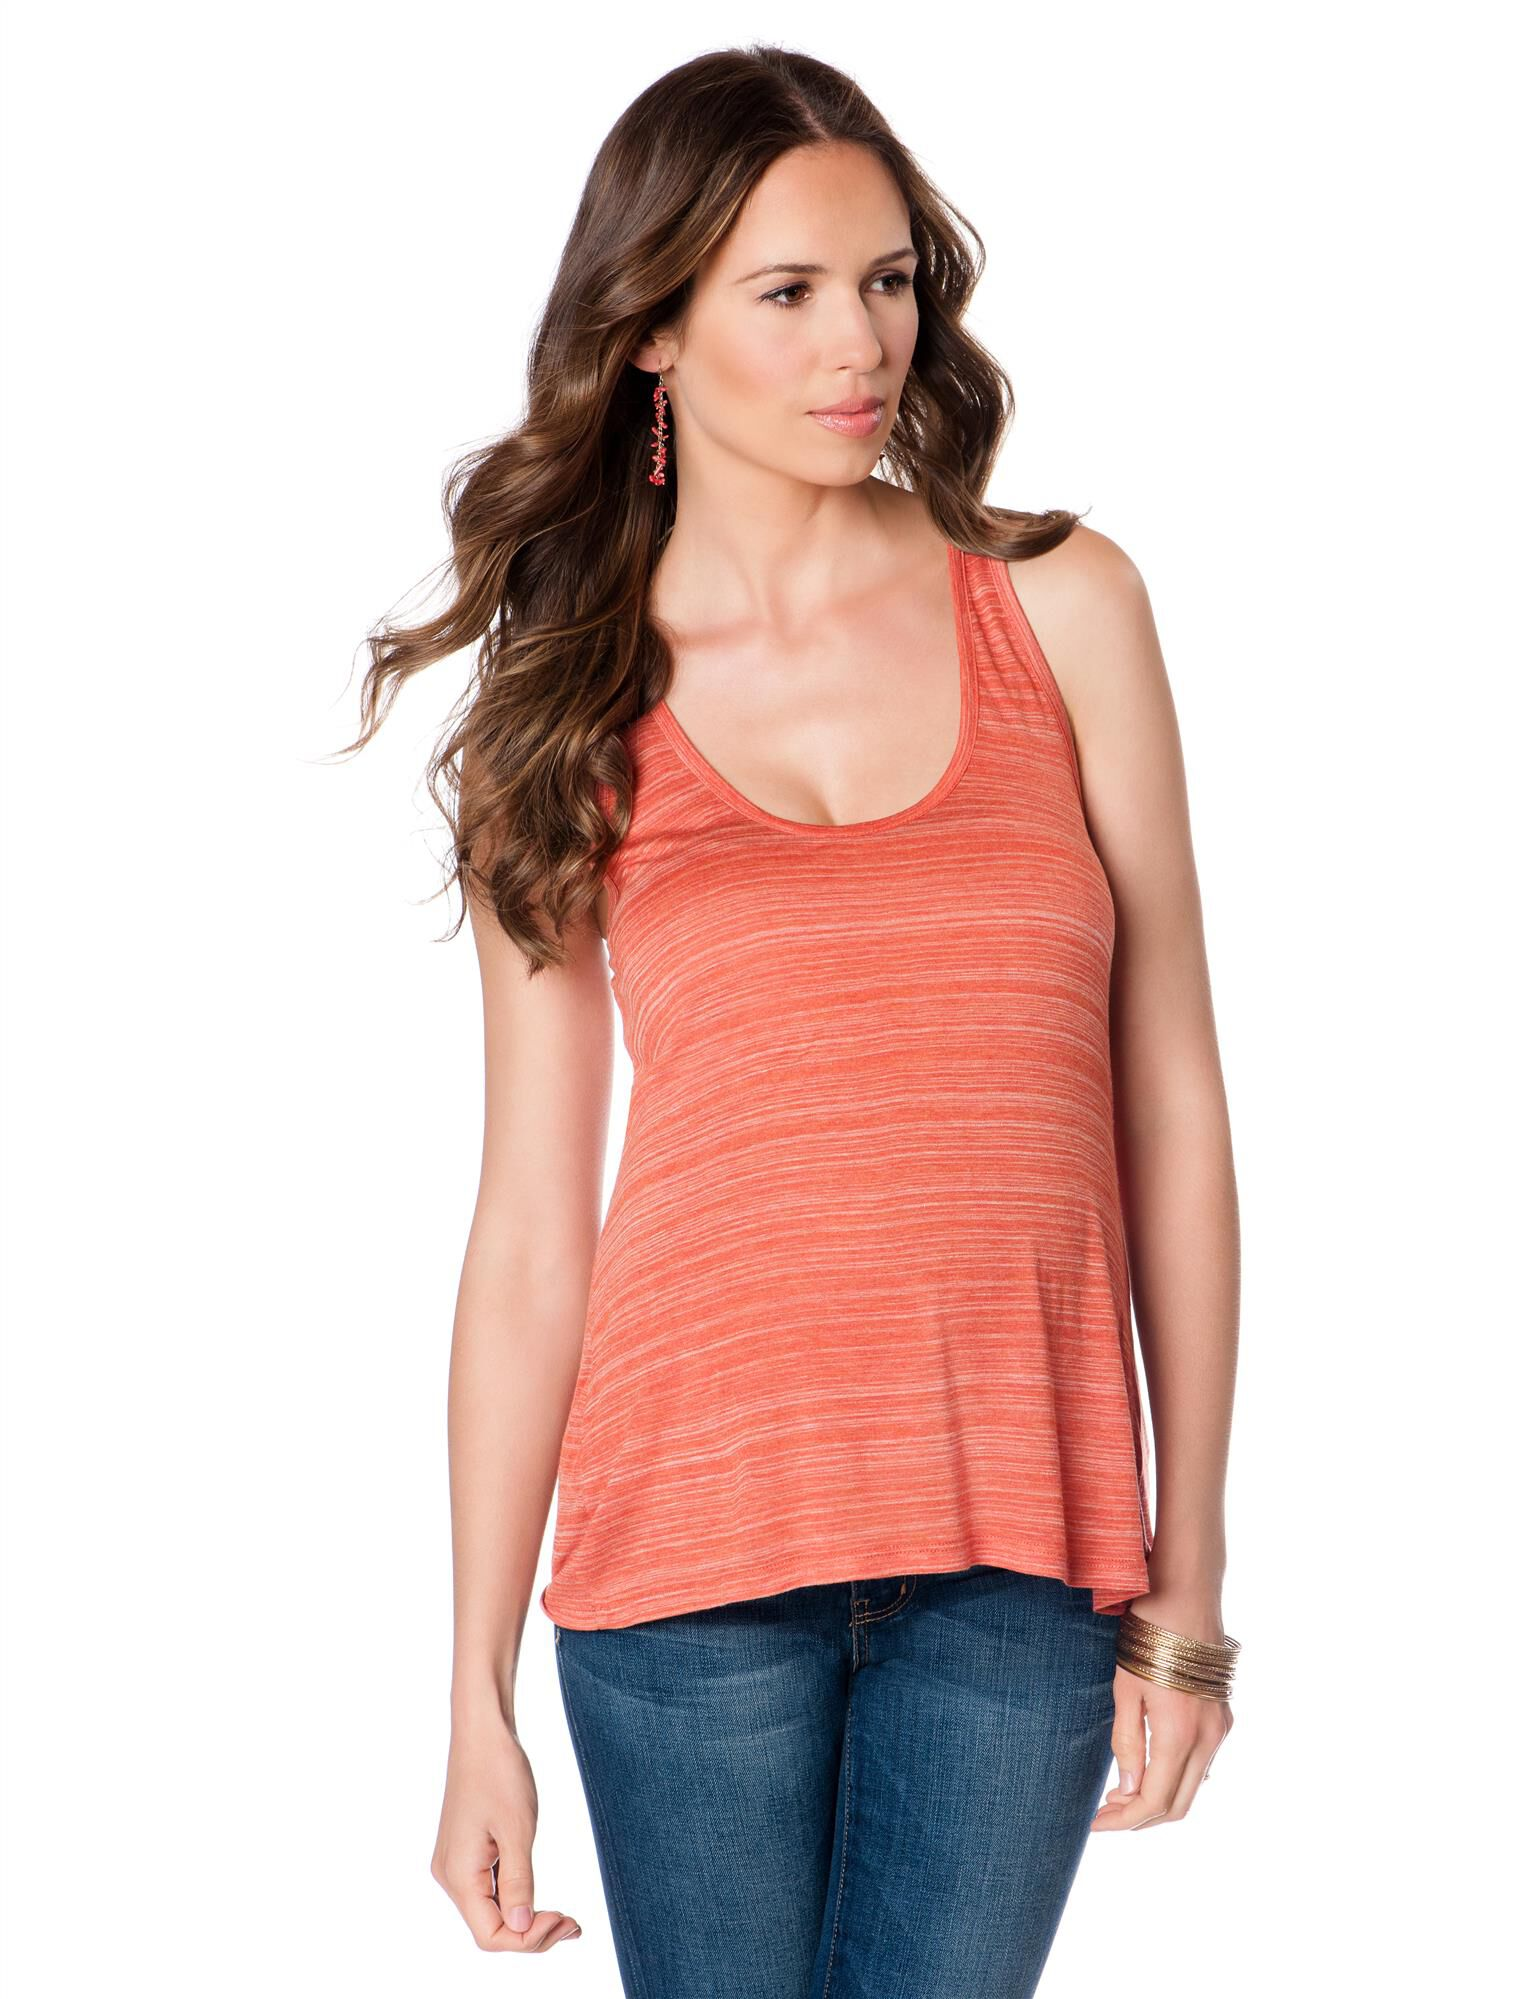 Vince Maternity Tank Top - Striped